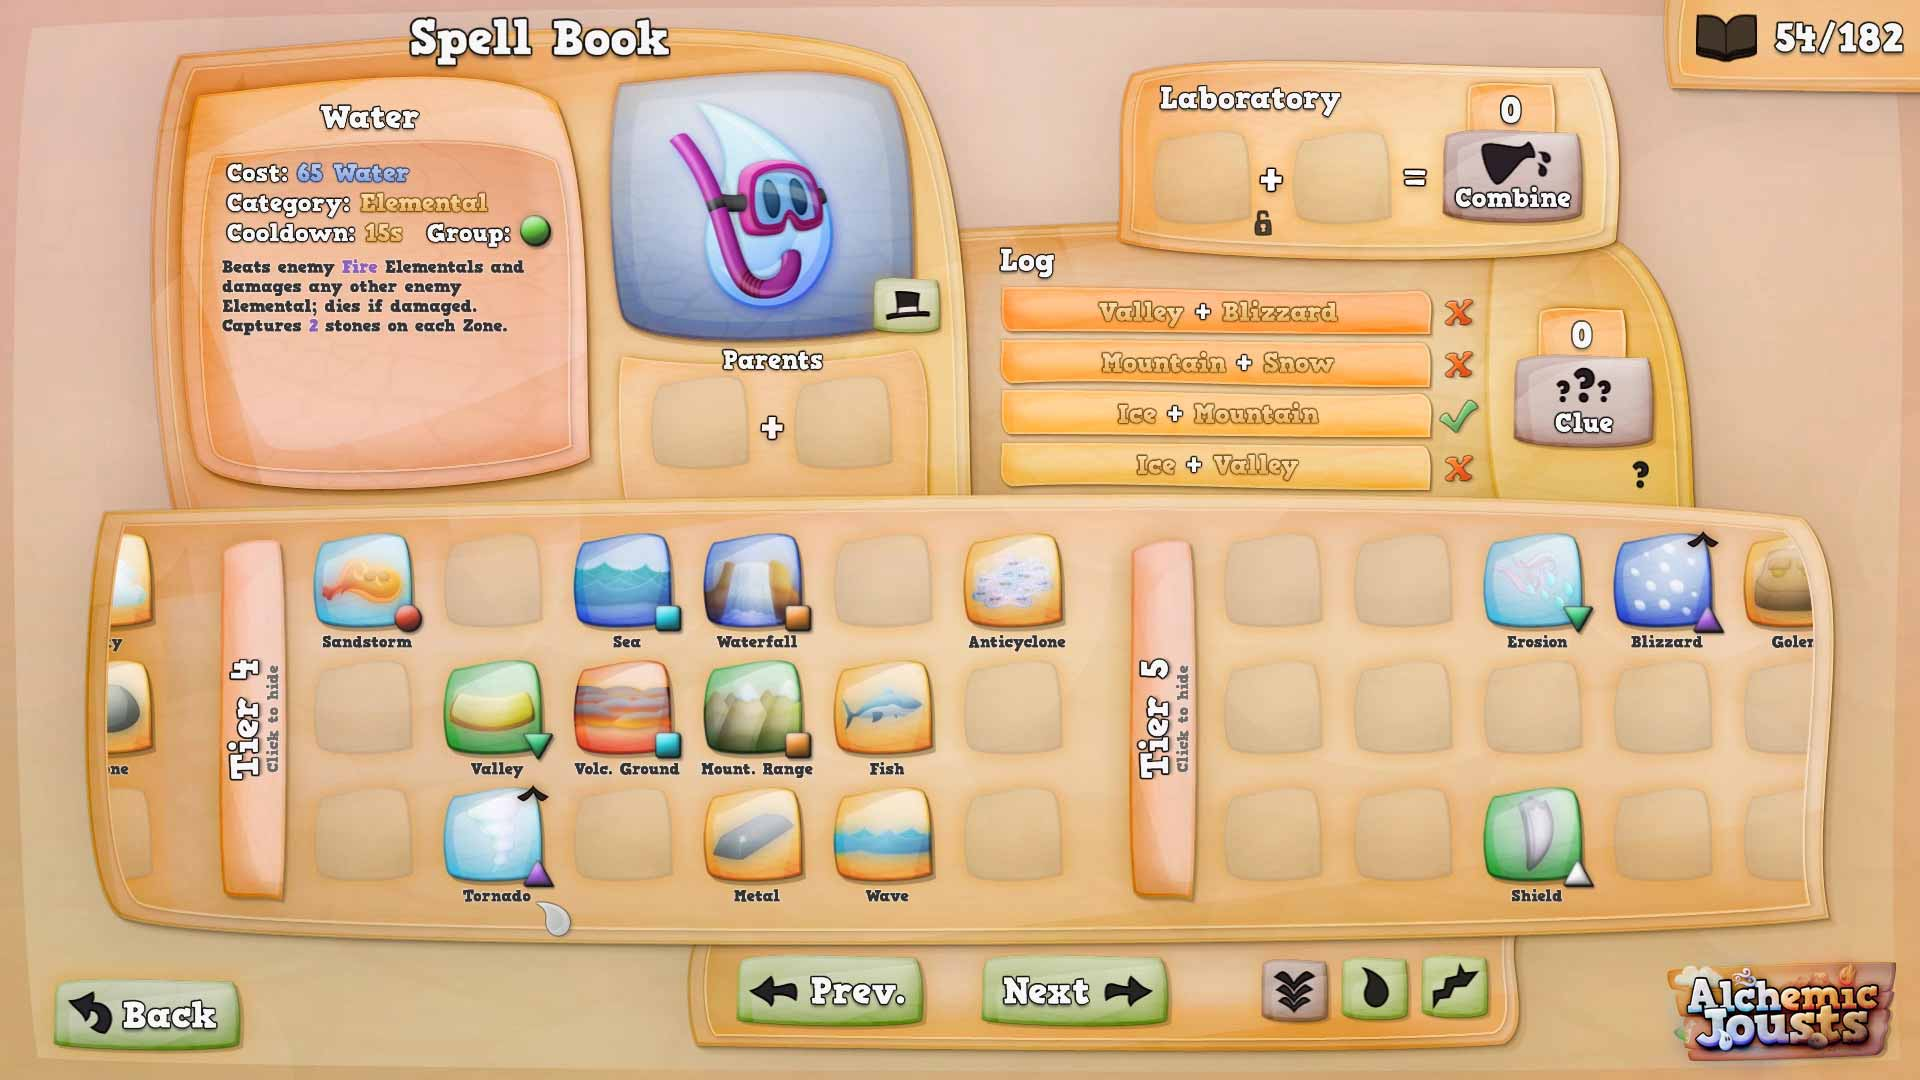 Alchemic Jousts creación de cartas